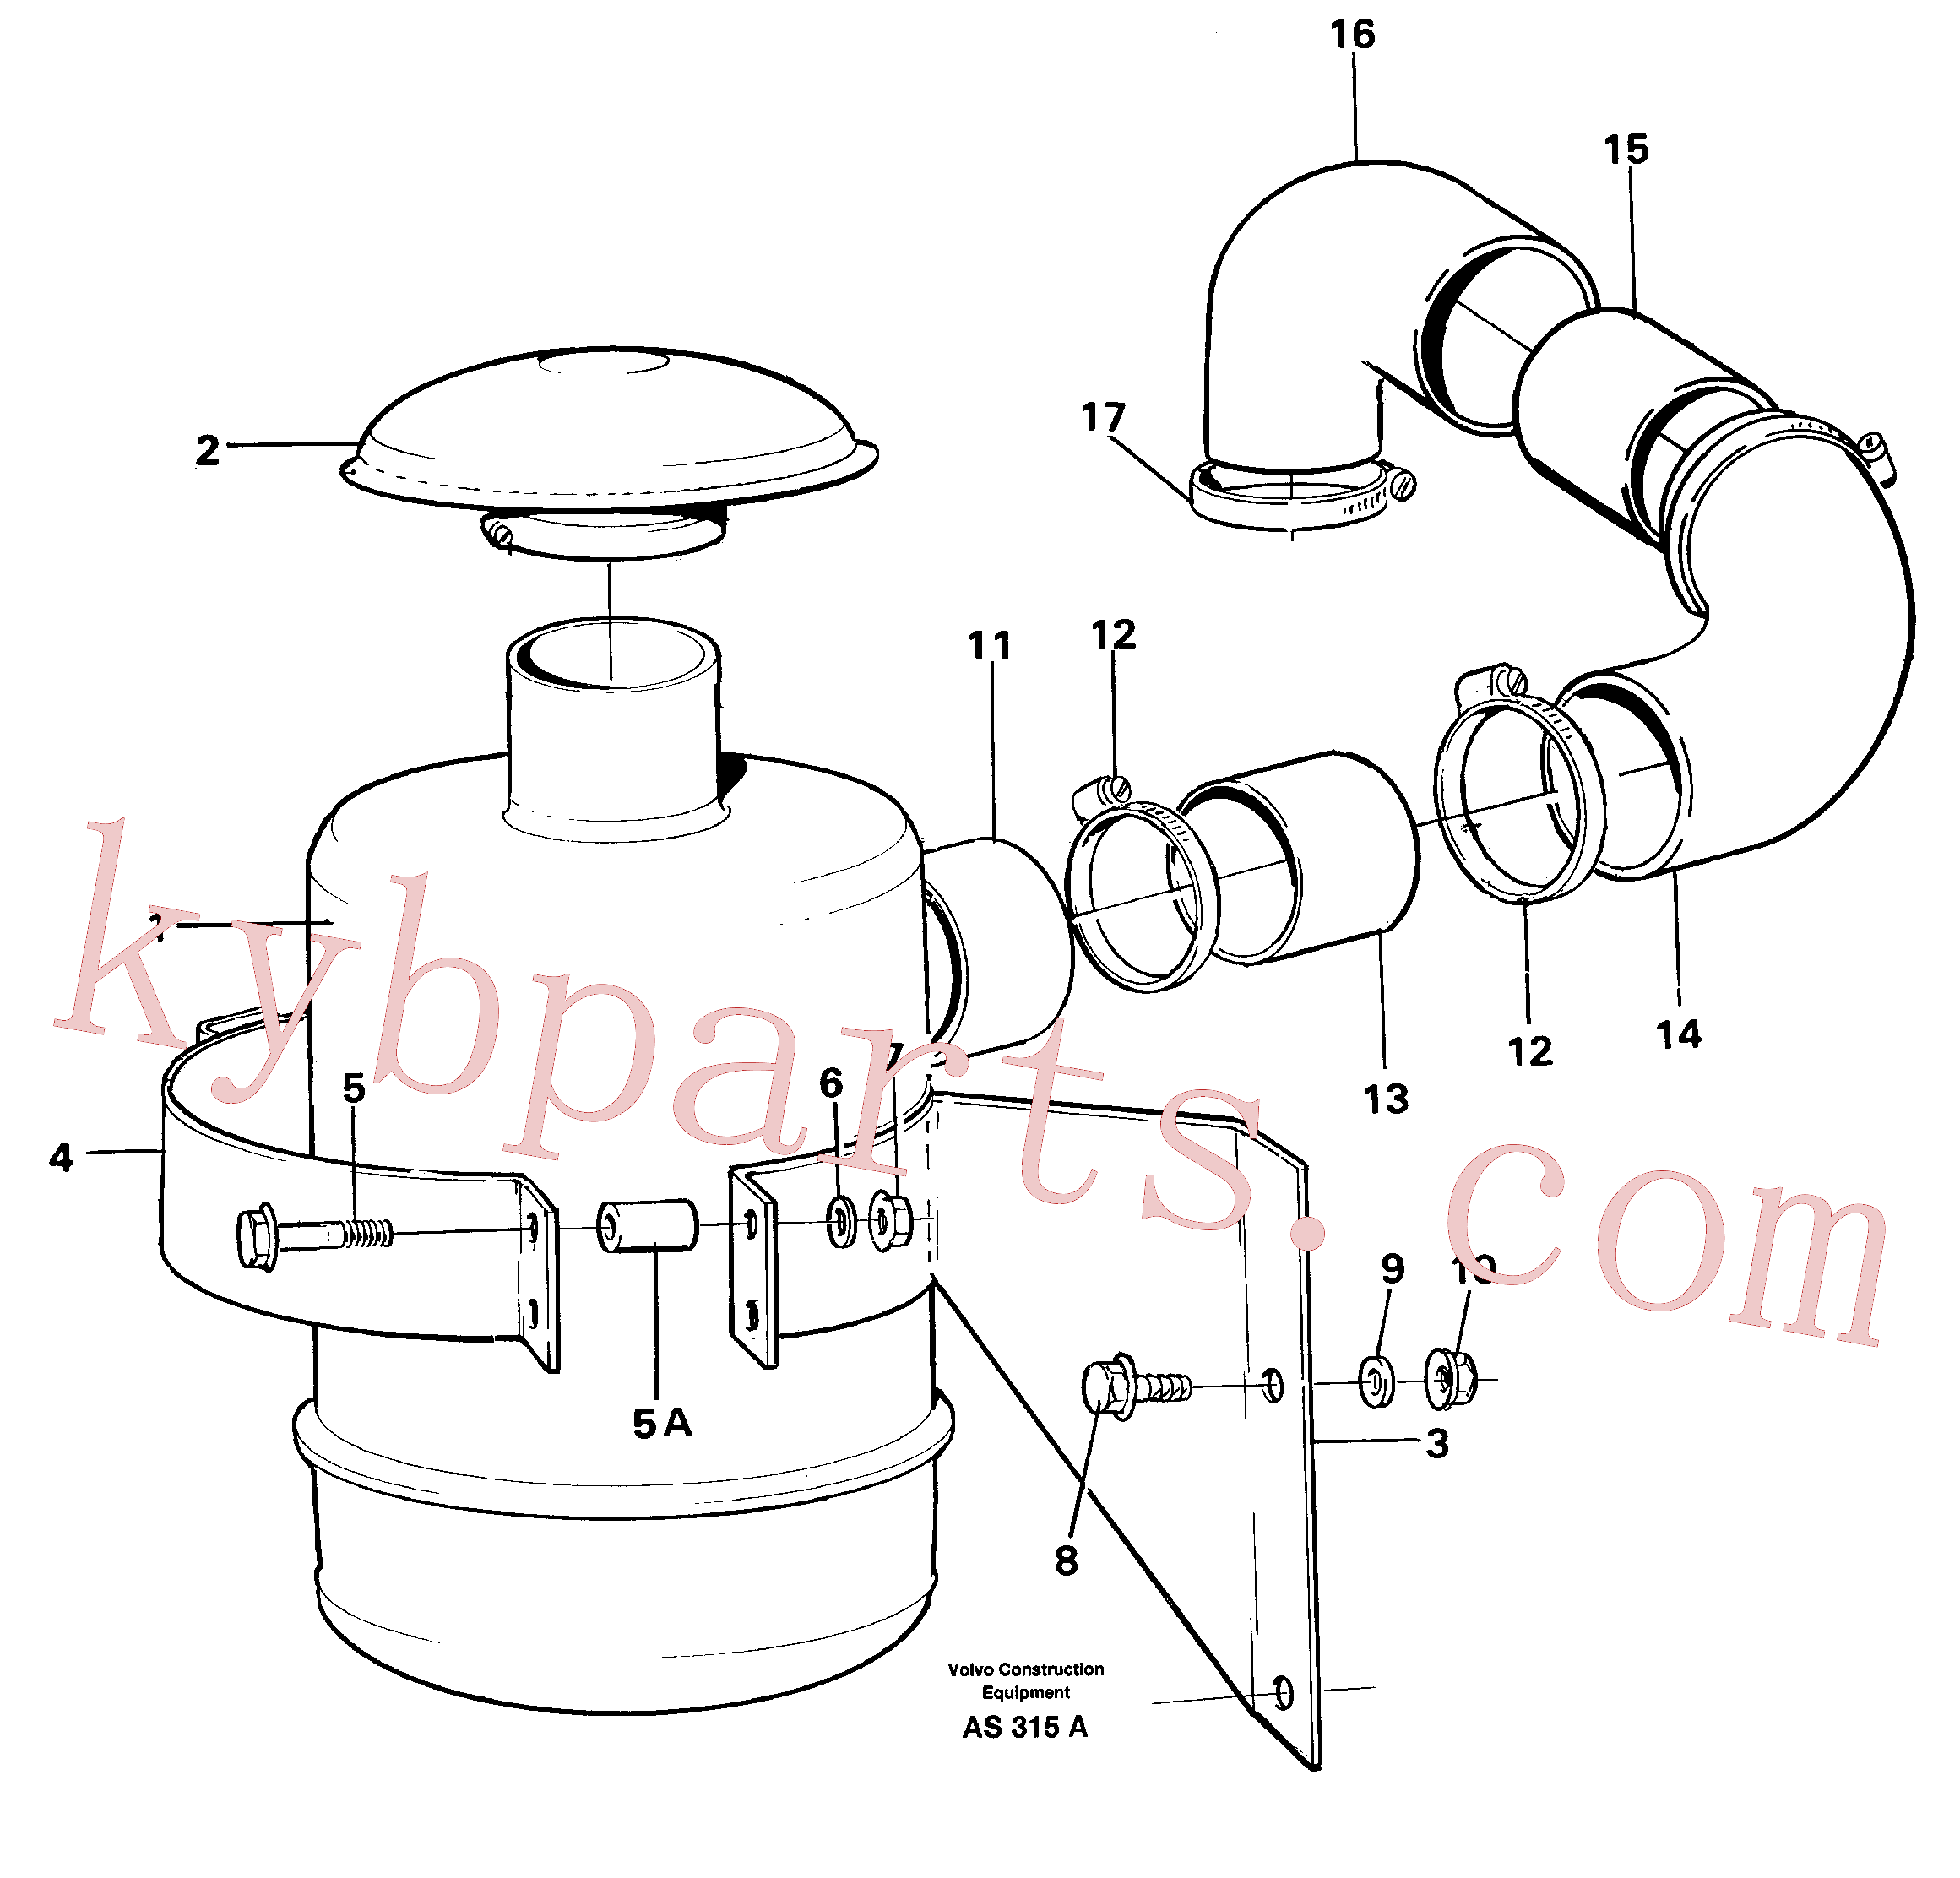 VOE943484 for Volvo Oil bath filter(AS315A assembly)